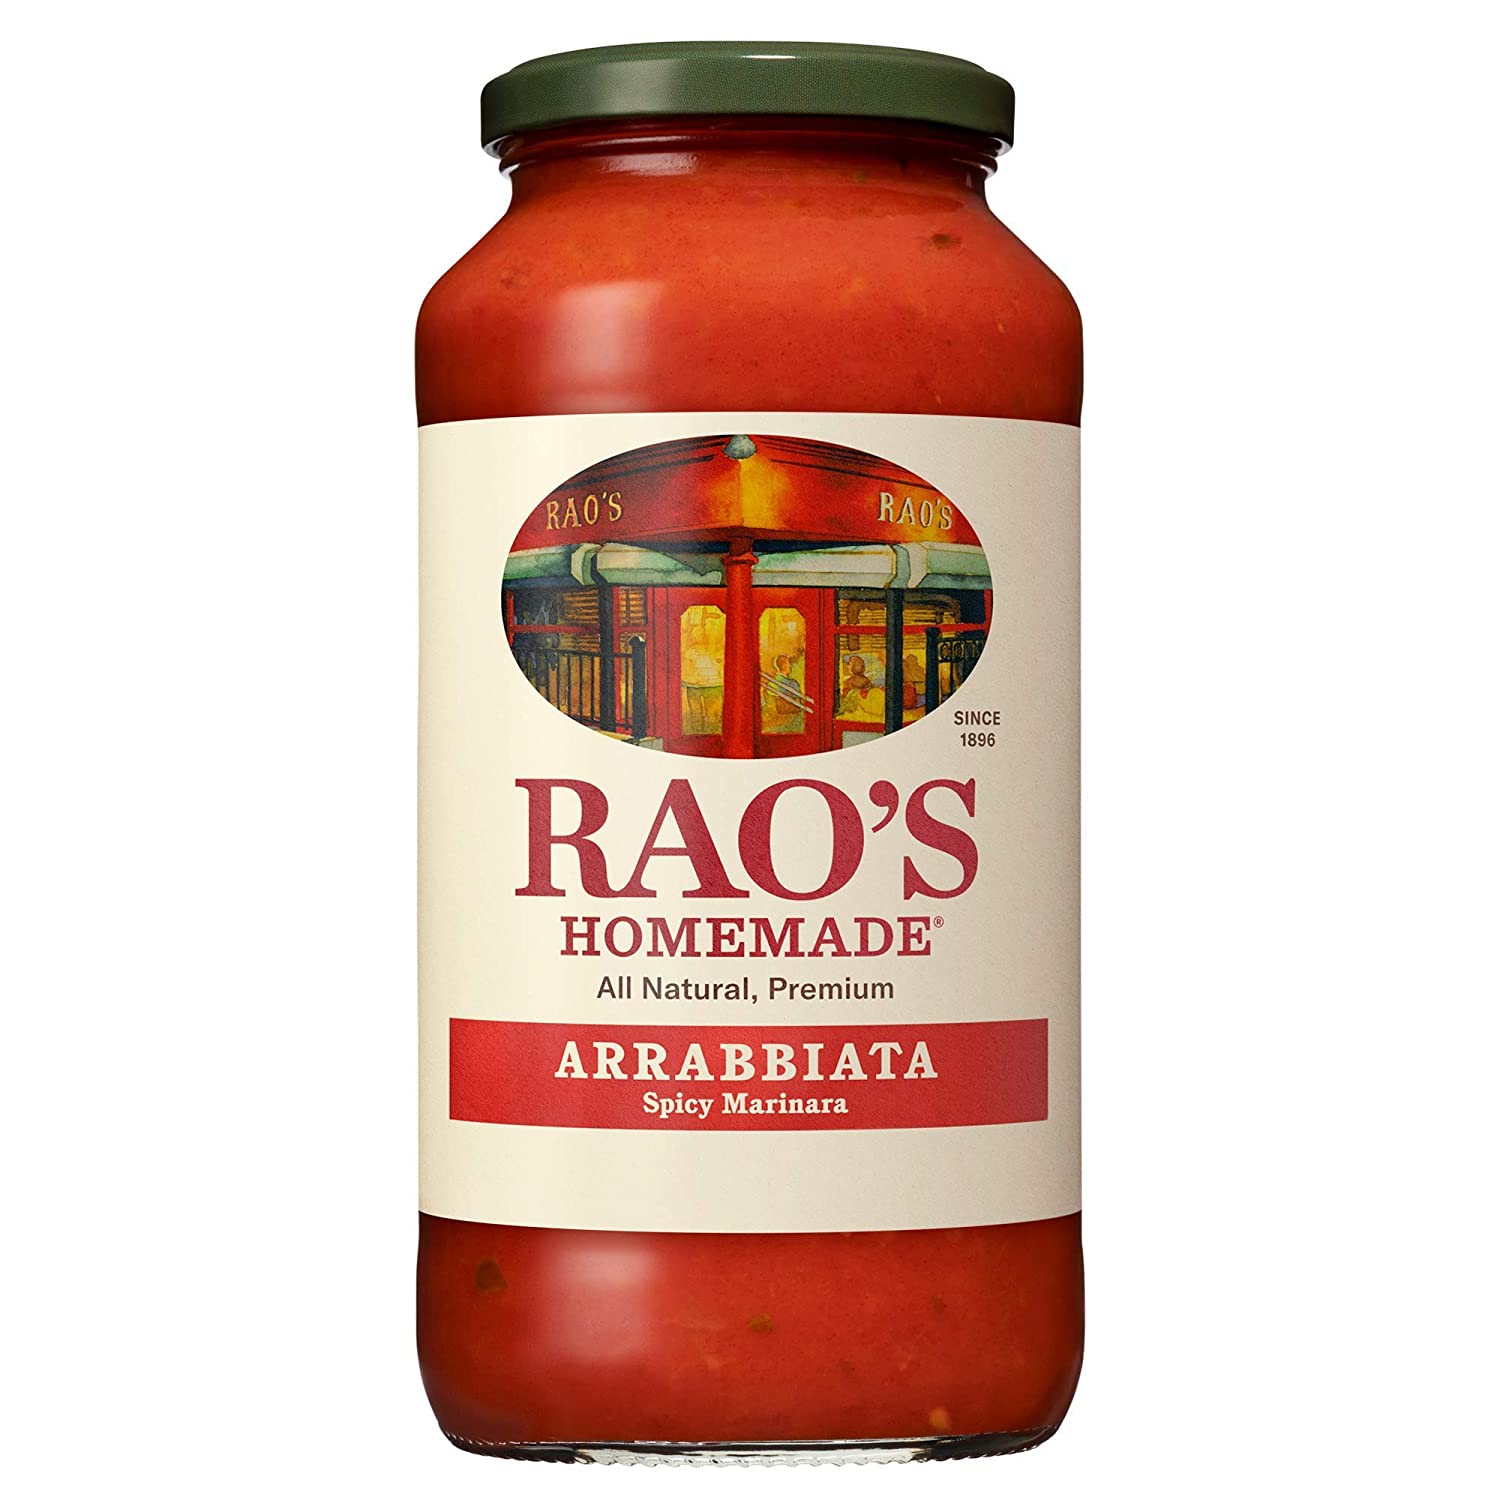 Rao's Homemade Arrabbiata Sauce, 24 oz, Spicy Tomato Sauce, Pasta Sauce, Carb Conscious, Keto Friendly, All Natural, Premium Quality, With Italian Tomatoes & Crushed Red Pepper